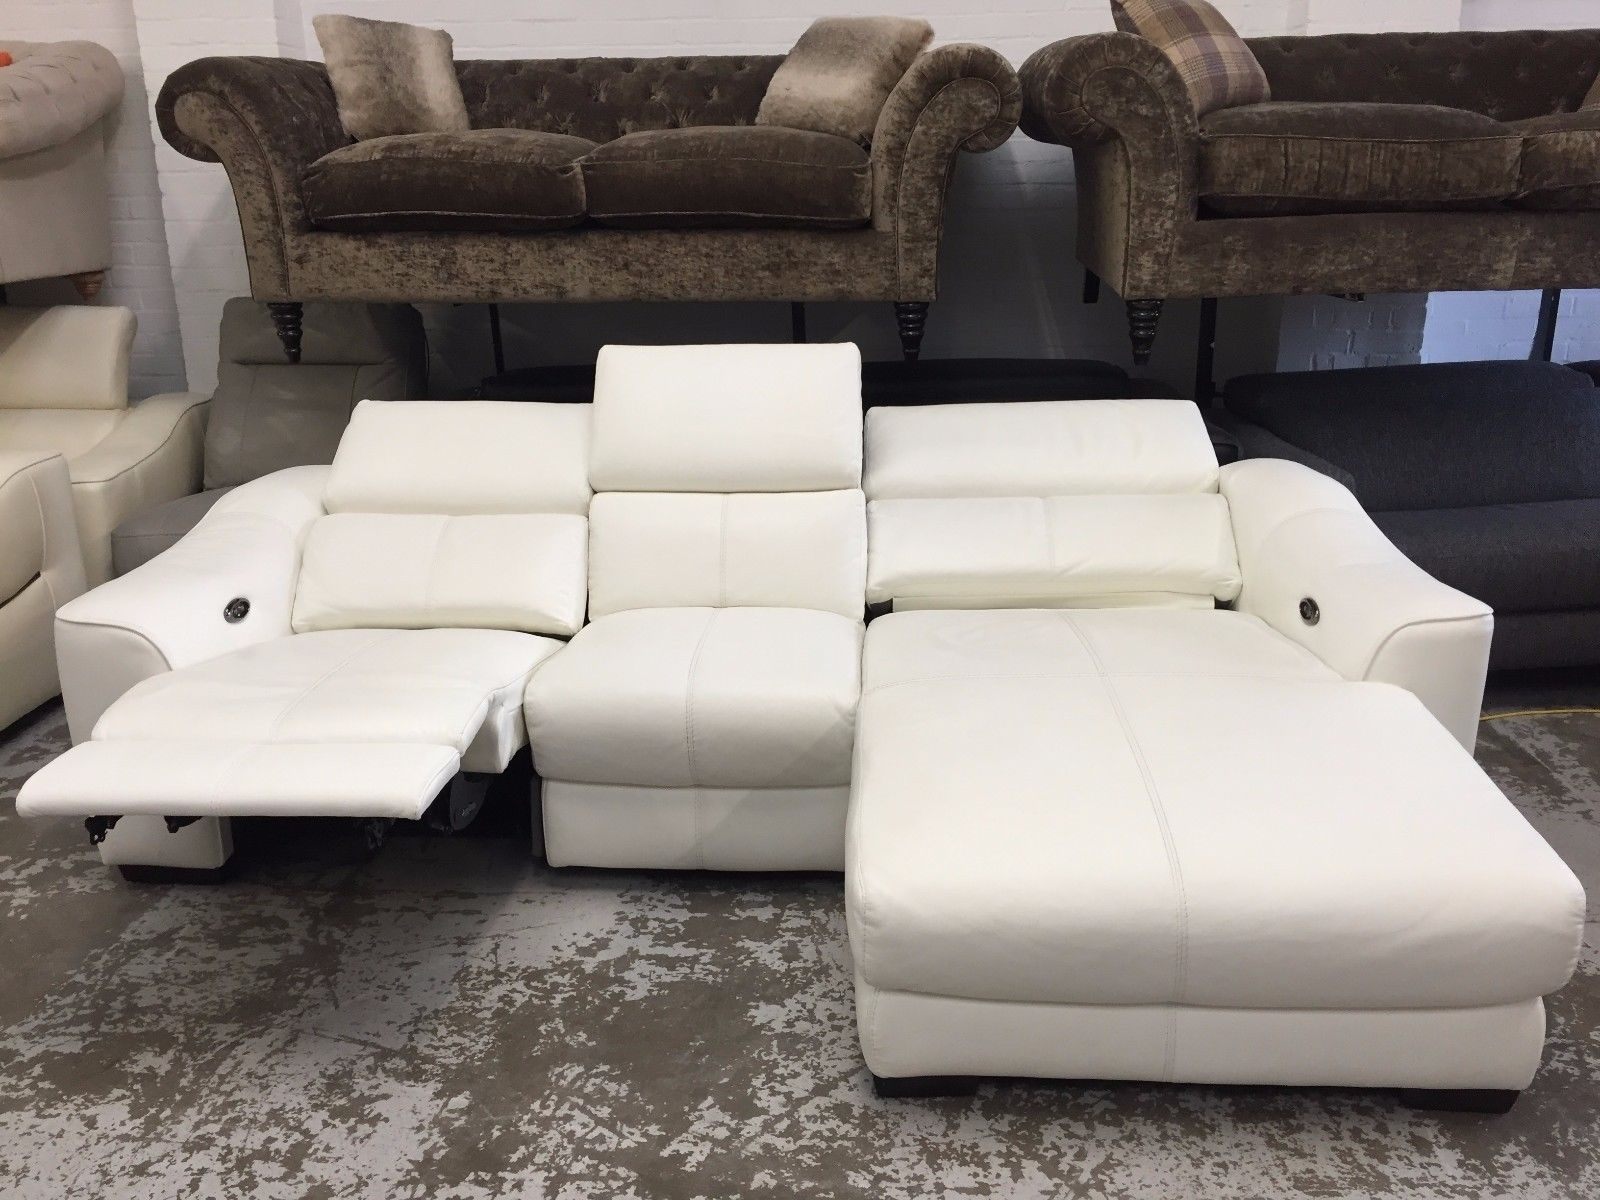 marco cream chaise sofa by factory outlet cheap deals uk ex display elixir electric 3 seater